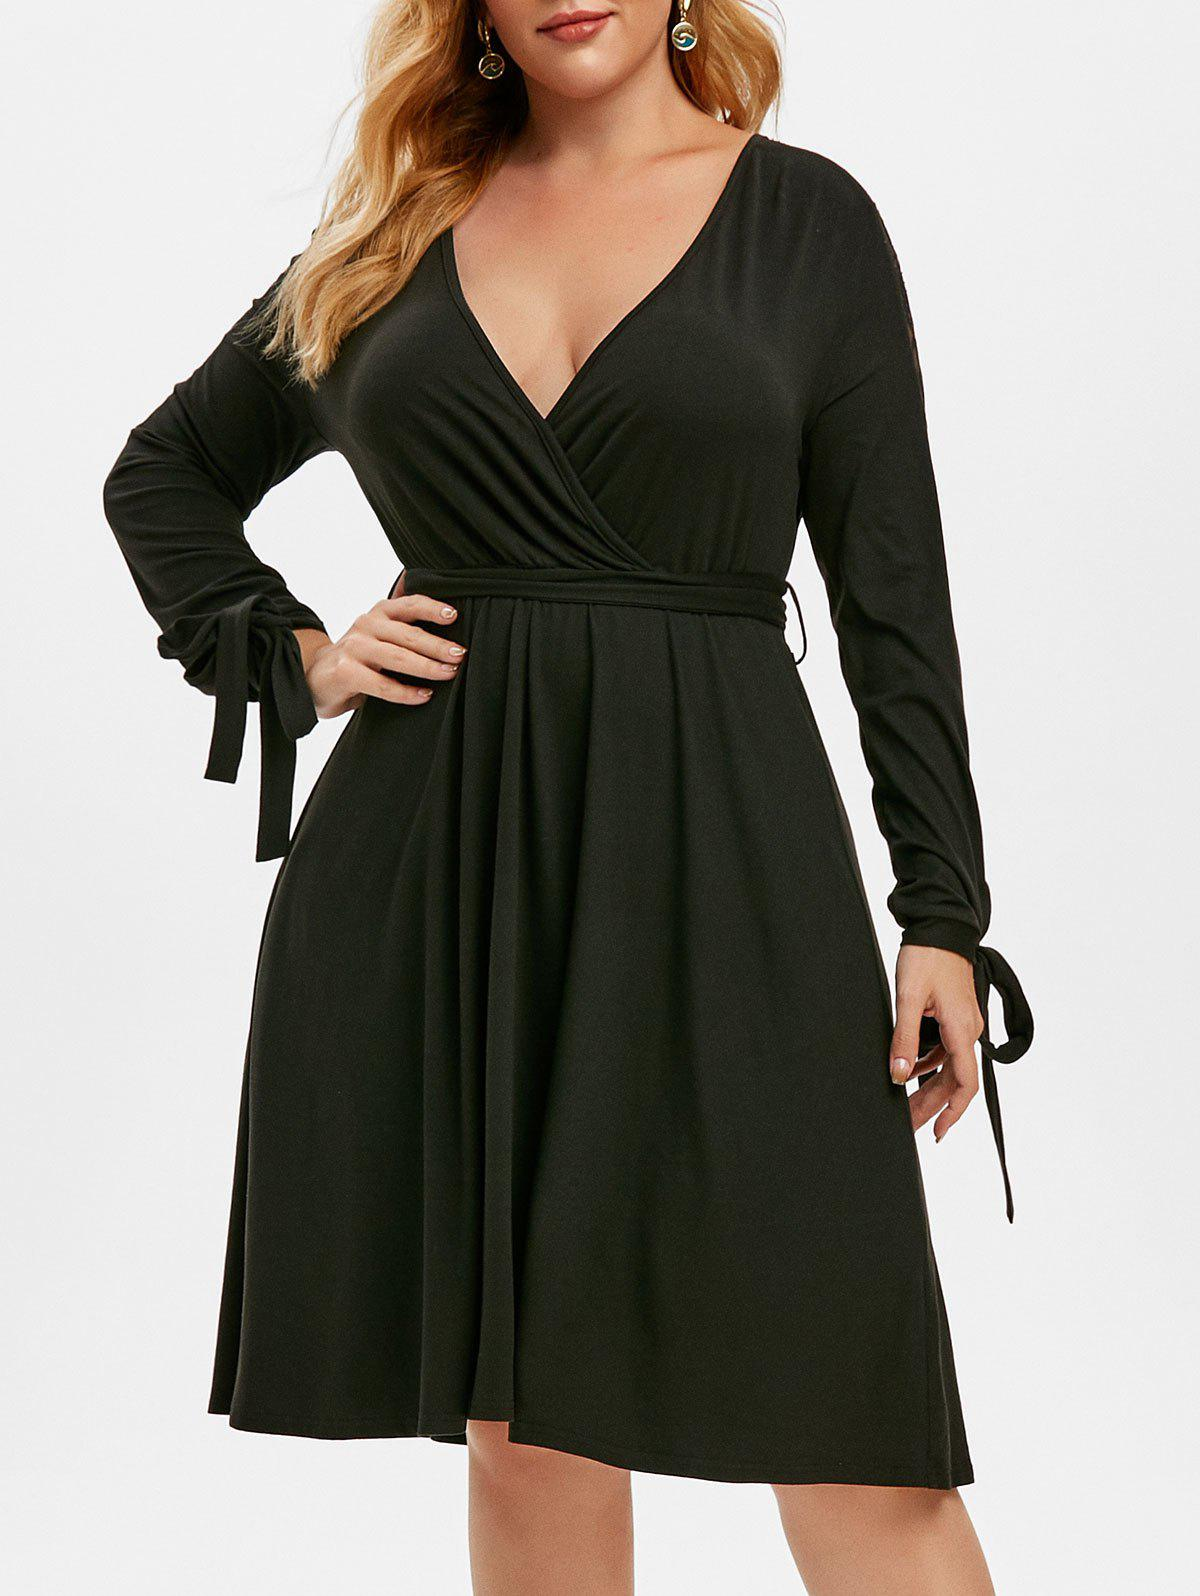 Plus Size Lace Insert Tie Sleeve Plunge Dress - BLACK 5X